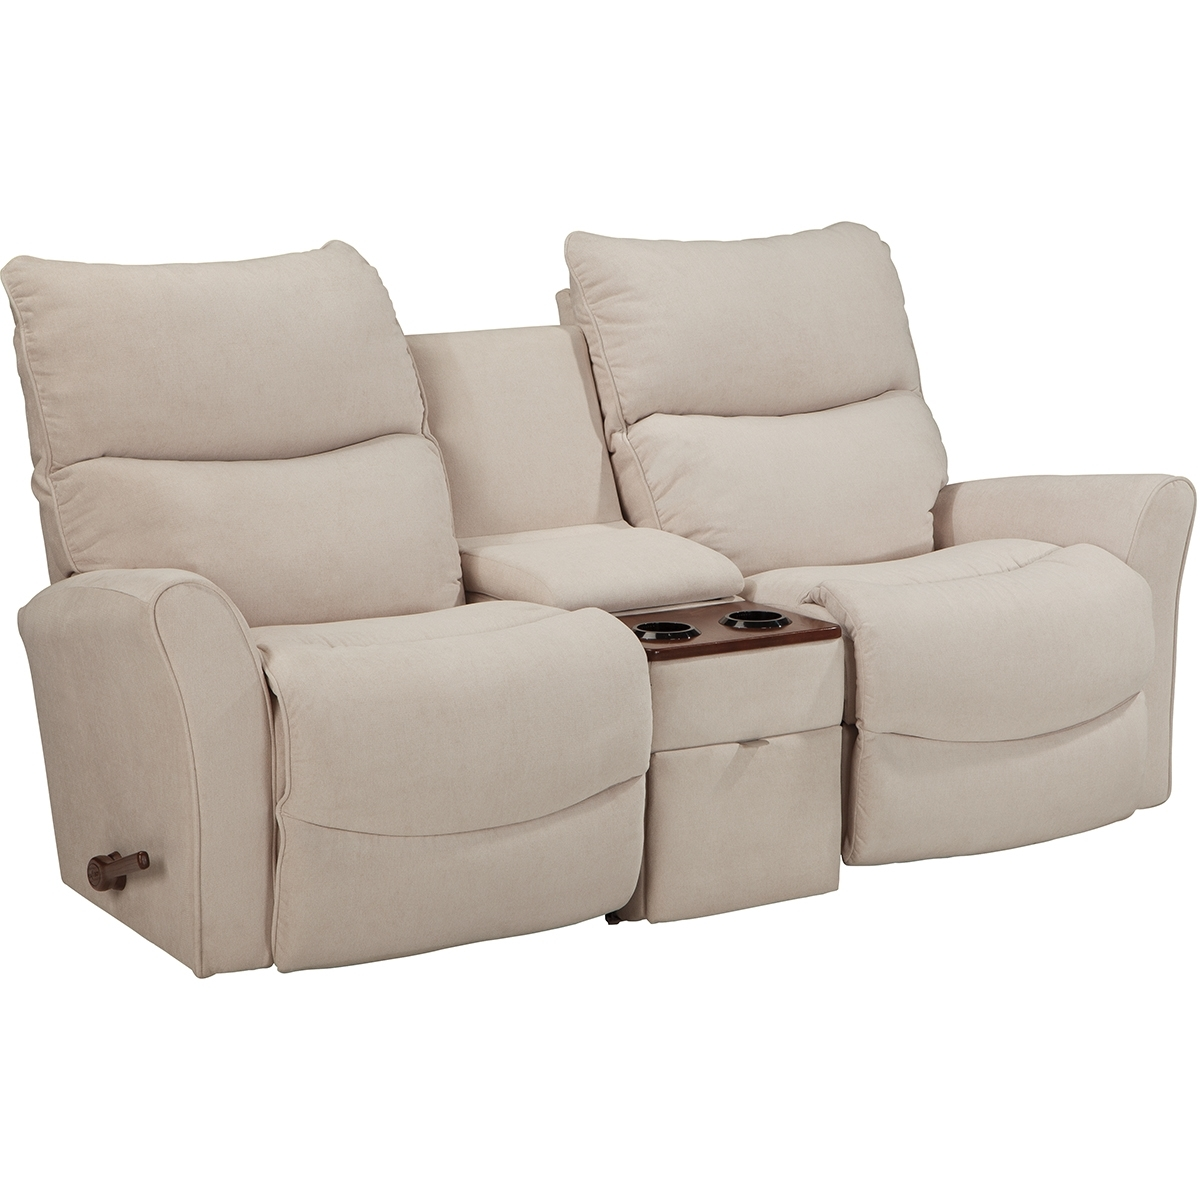 Sectional Sofas & Sectional Couches | La Z Boy With La Z Boy Sectional Sofas (Image 10 of 10)